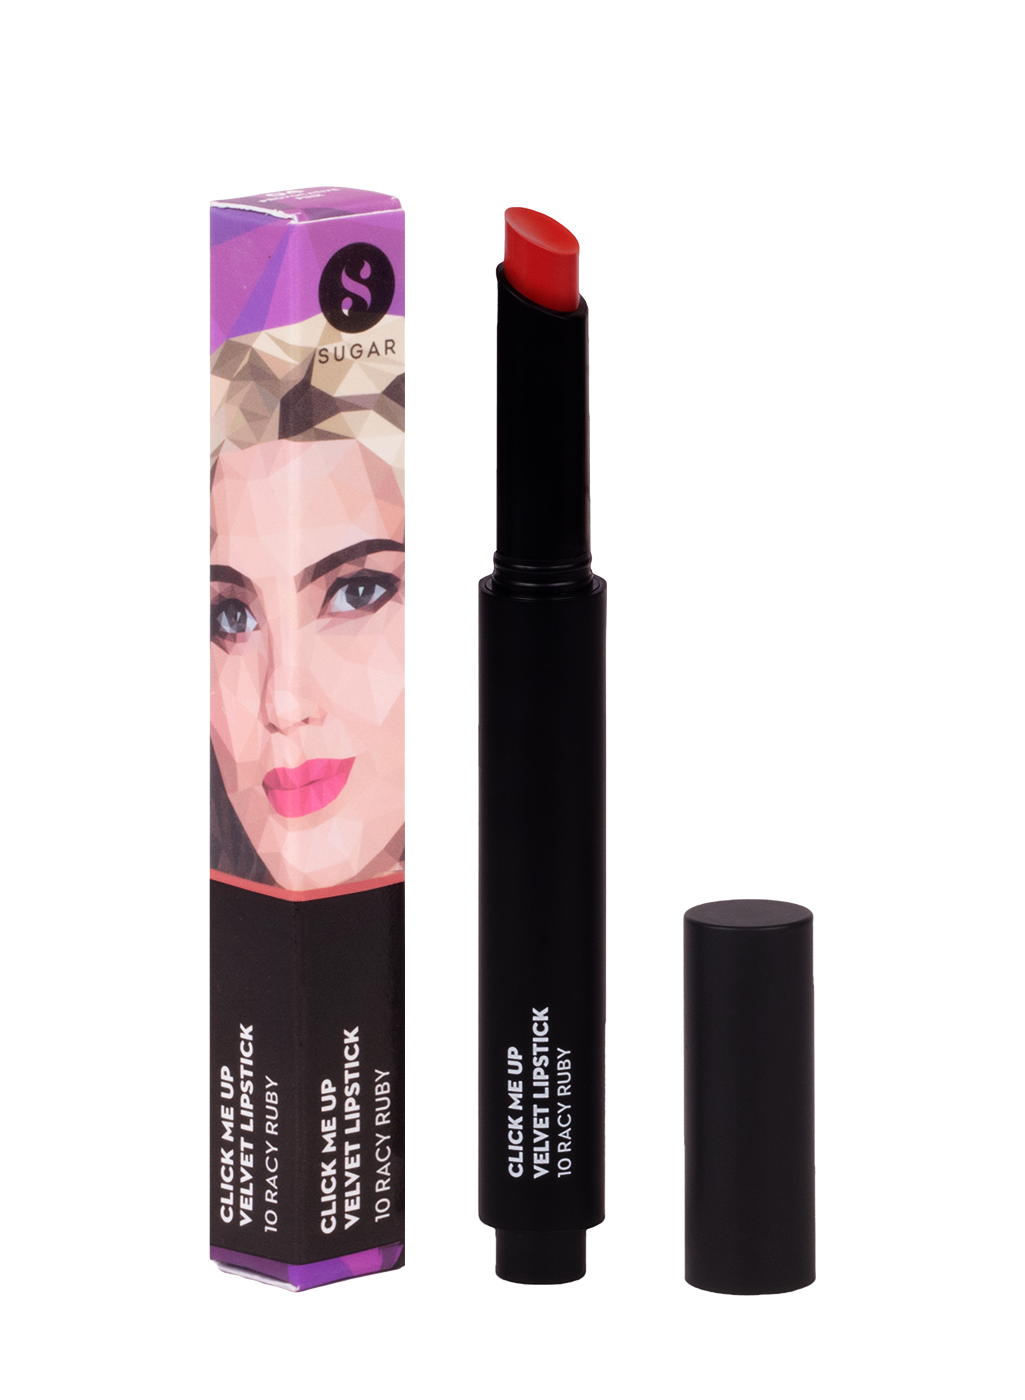 SUGAR Click Me Up Velvet Lipstick - 10 Racy Ruby (Bright Red)